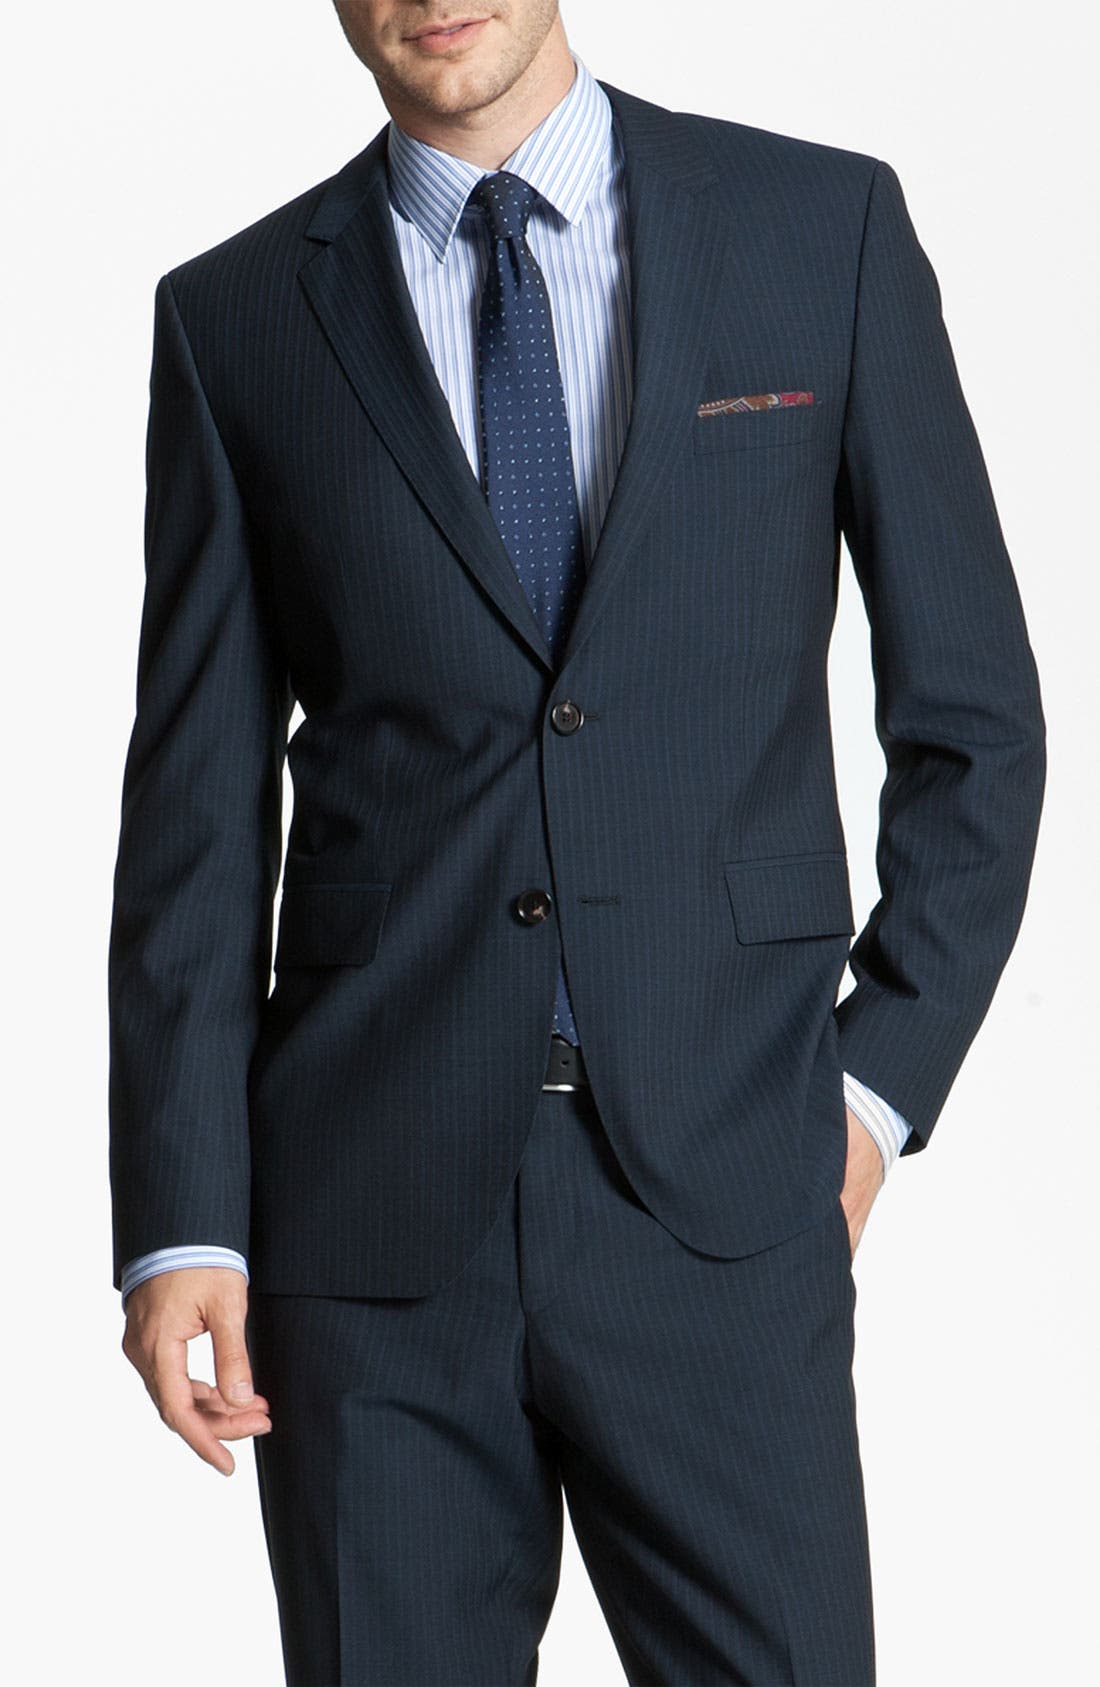 Main Image - BOSS Black 'James/Sharp' Trim Fit Suit